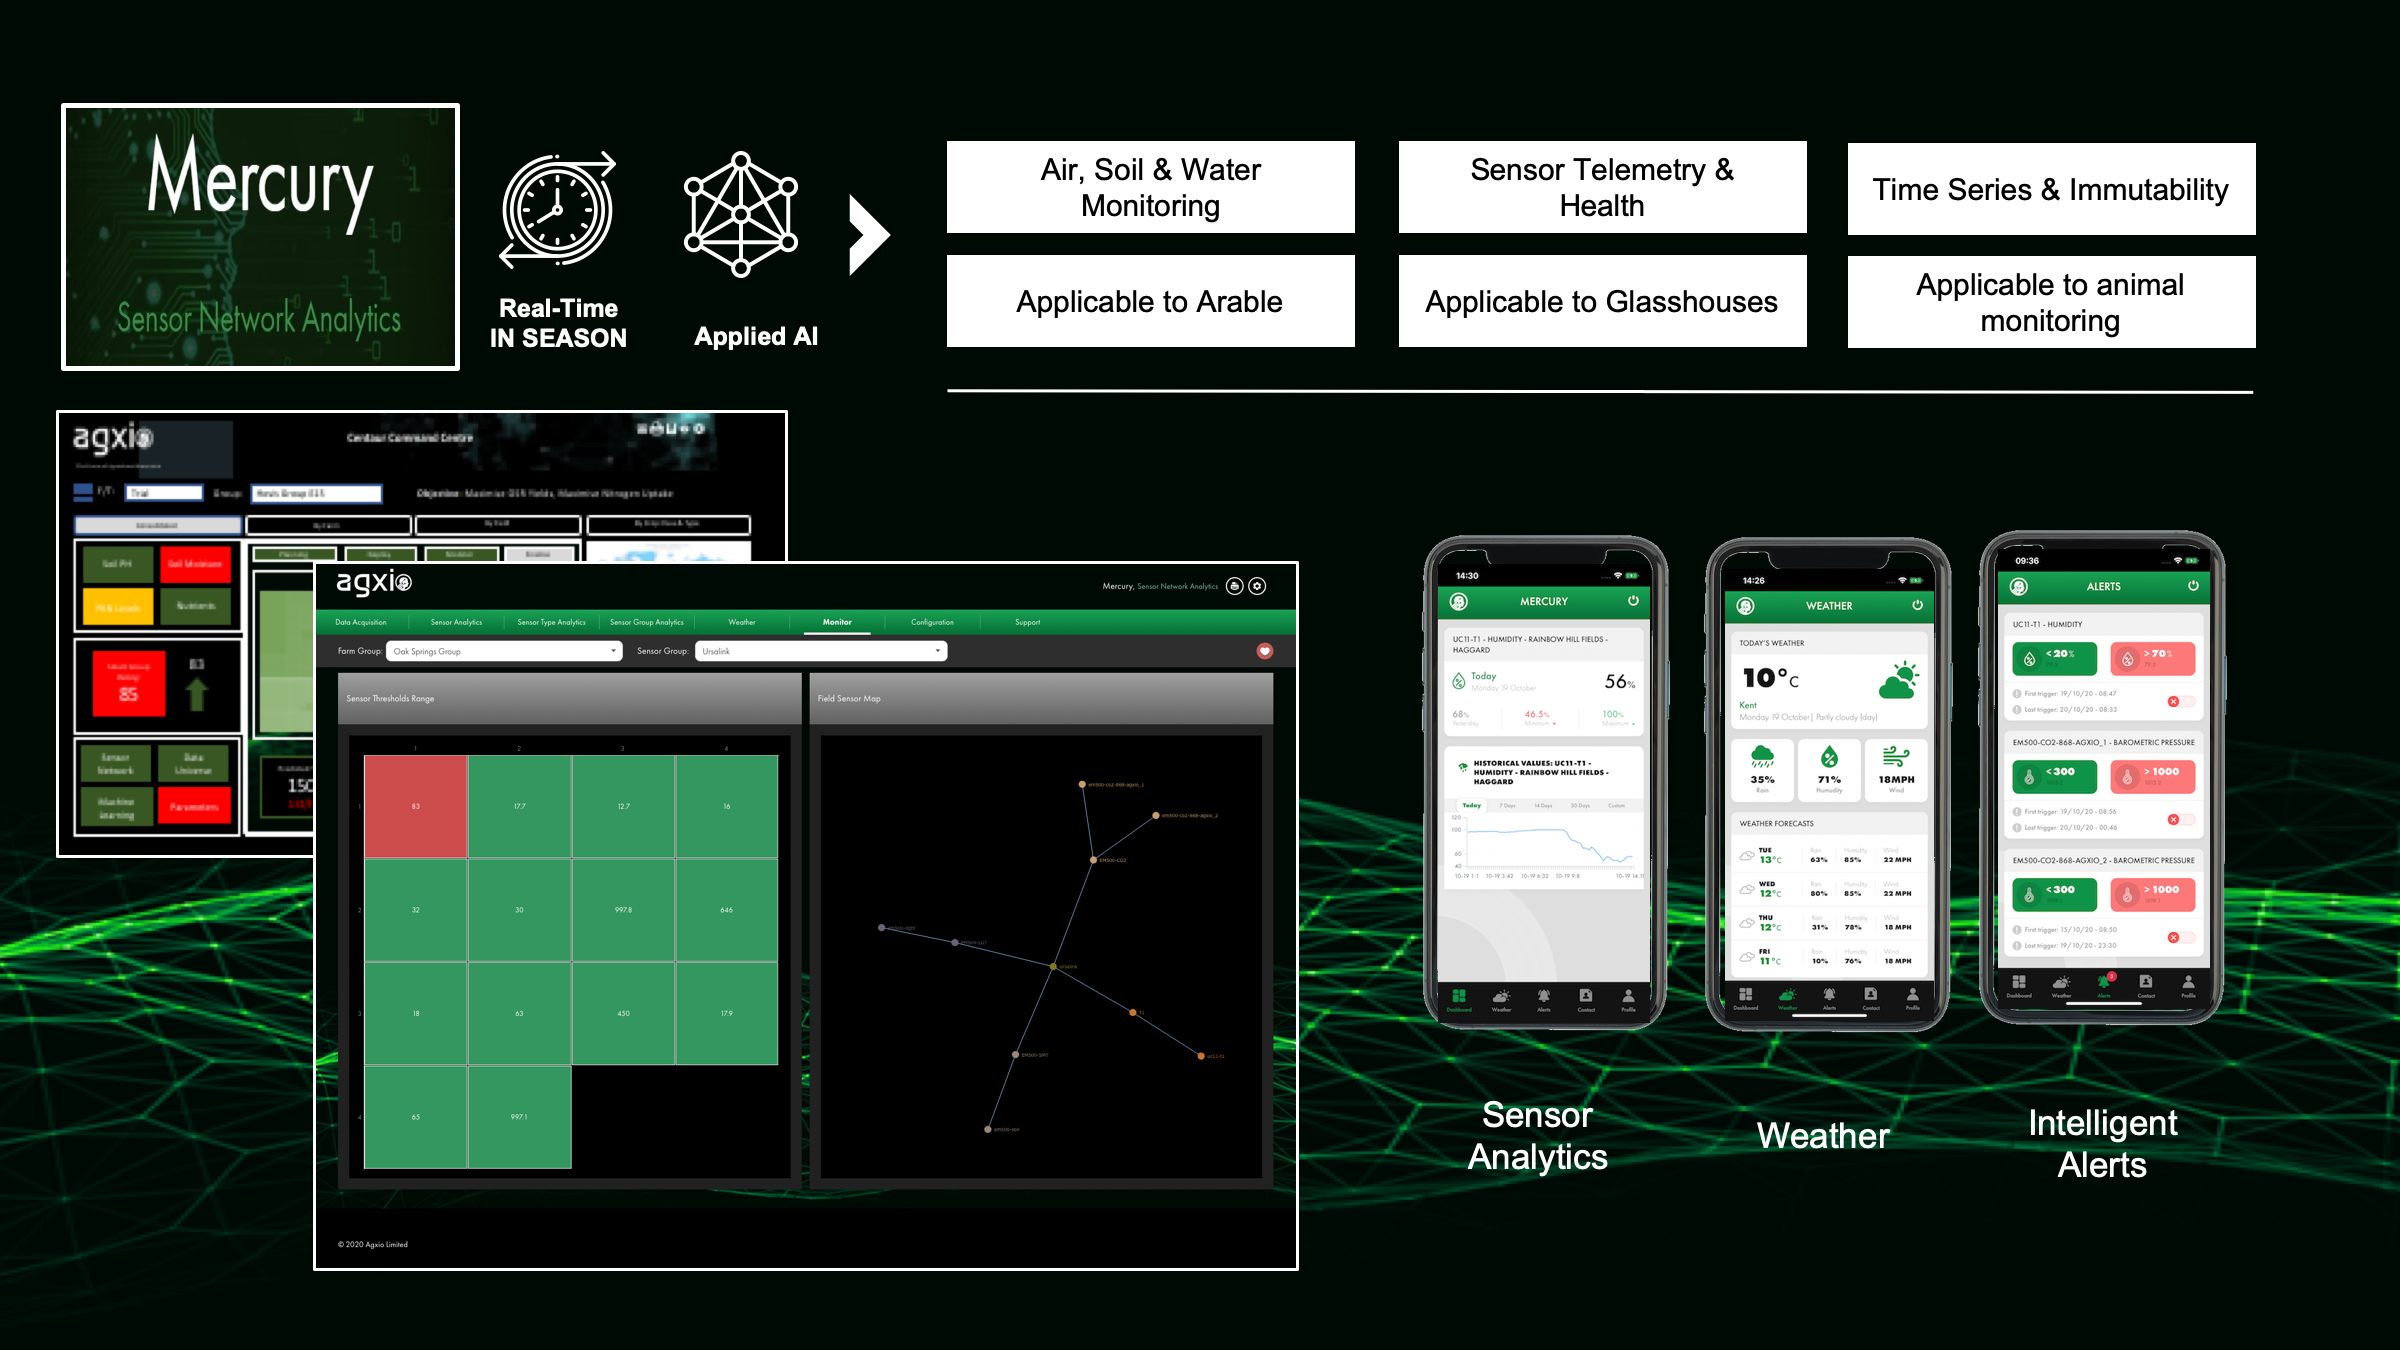 A graphic displaying the main elements of the Agxio Mercury platform, including data analysis, machine learning, AI and sensor analytics.